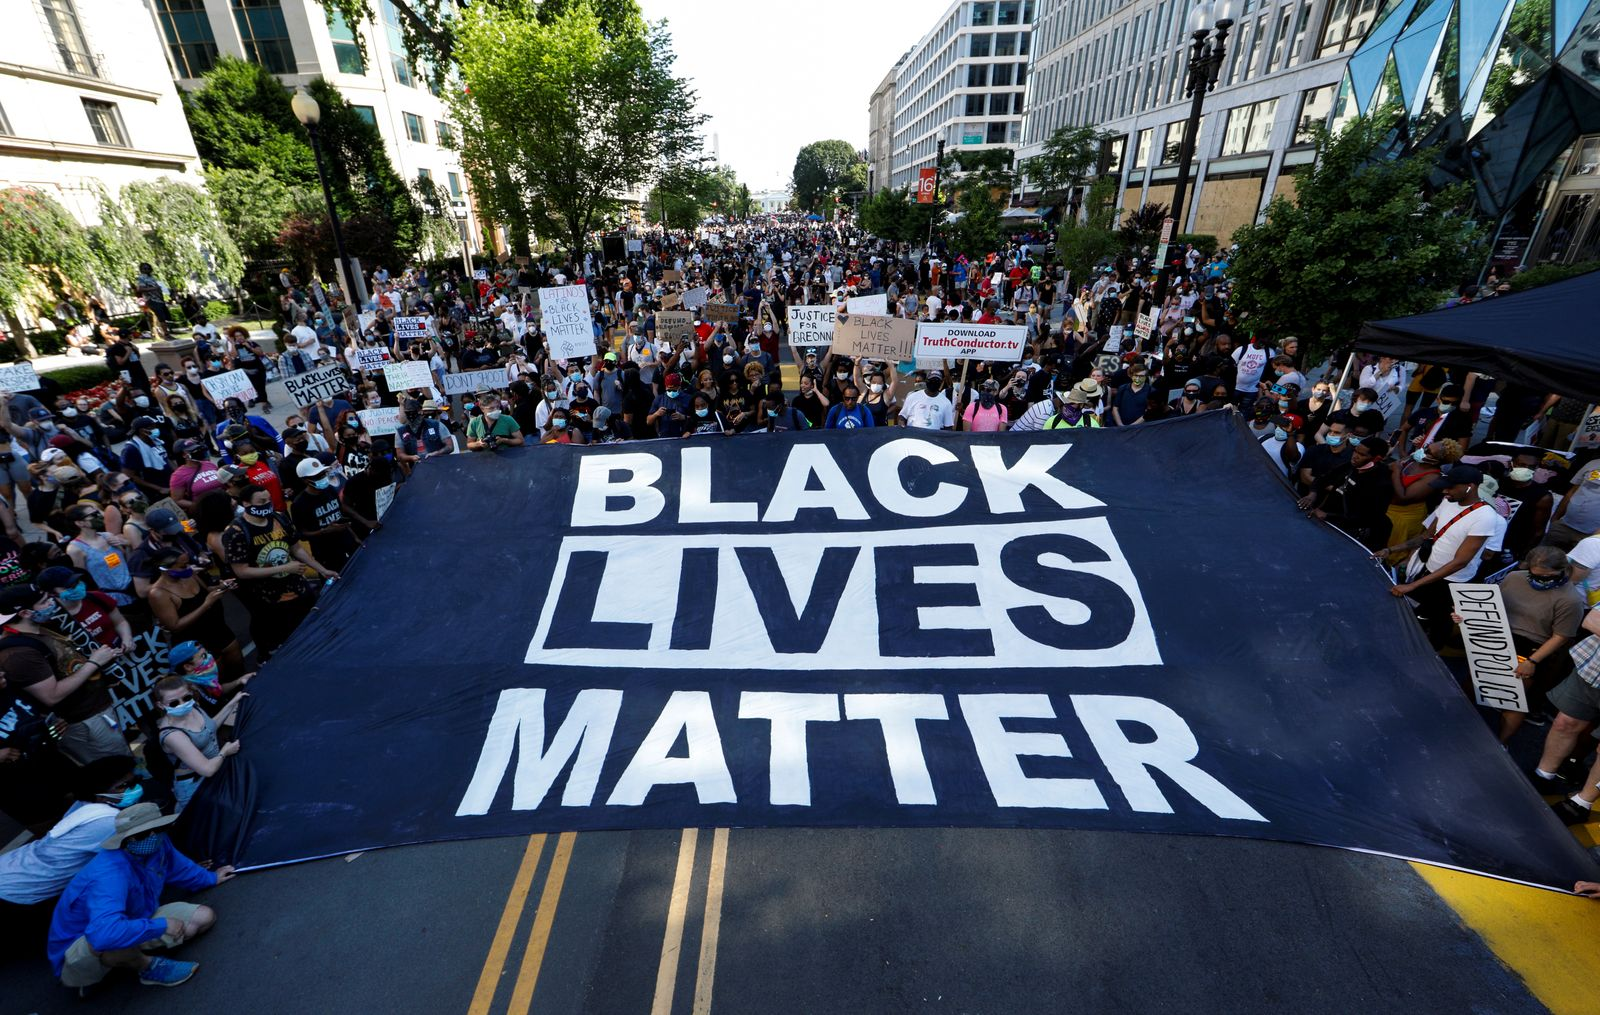 Protest against racial inequality in the aftermath of the death in Minneapolis police custody of George Floyd, in Washington